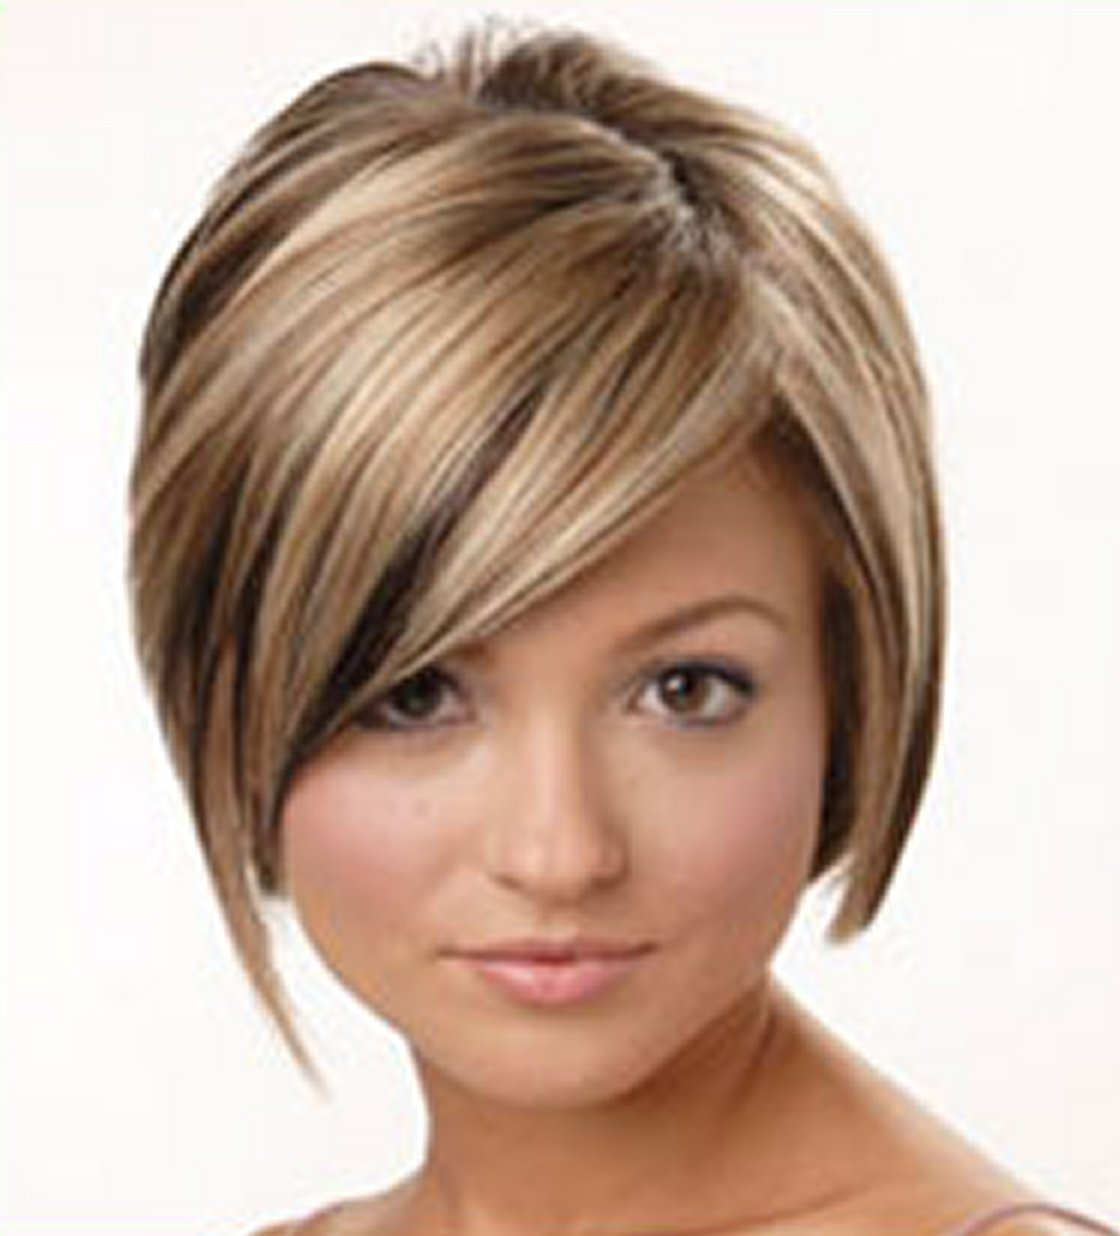 Haircut With The Fringe Cut Texture Short Textured Hair